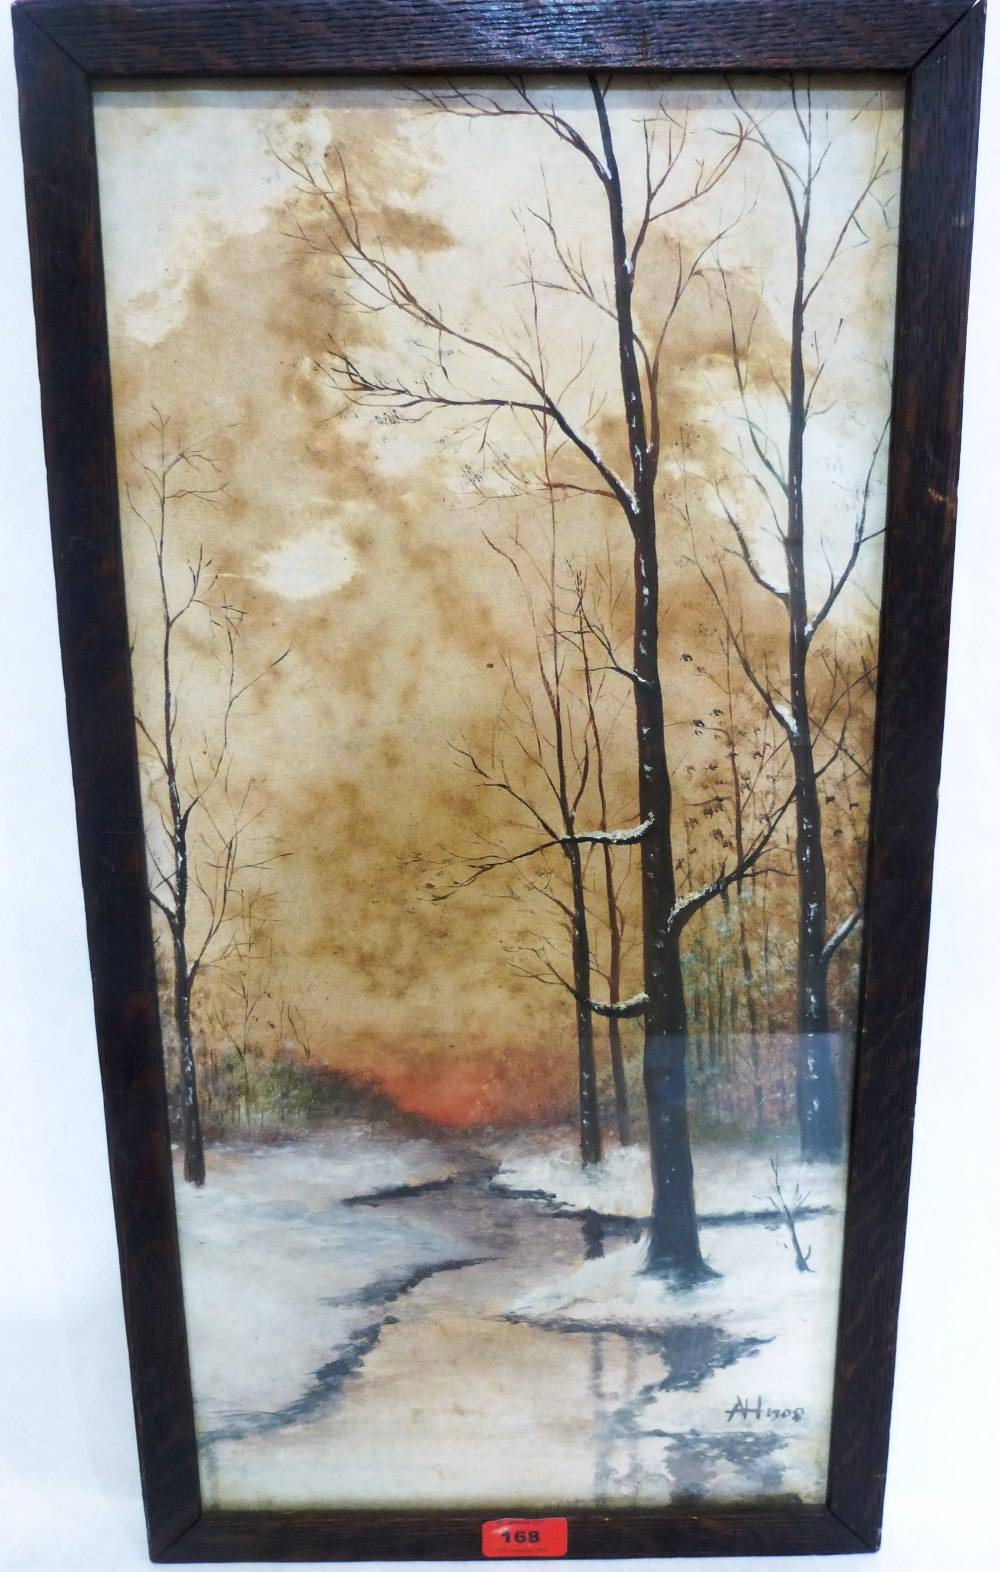 Lot 168 - AFTER ADOLF HITLER. 1889 - 1945 A woodland stream in winter. Bears signature initials 'AH' and dated